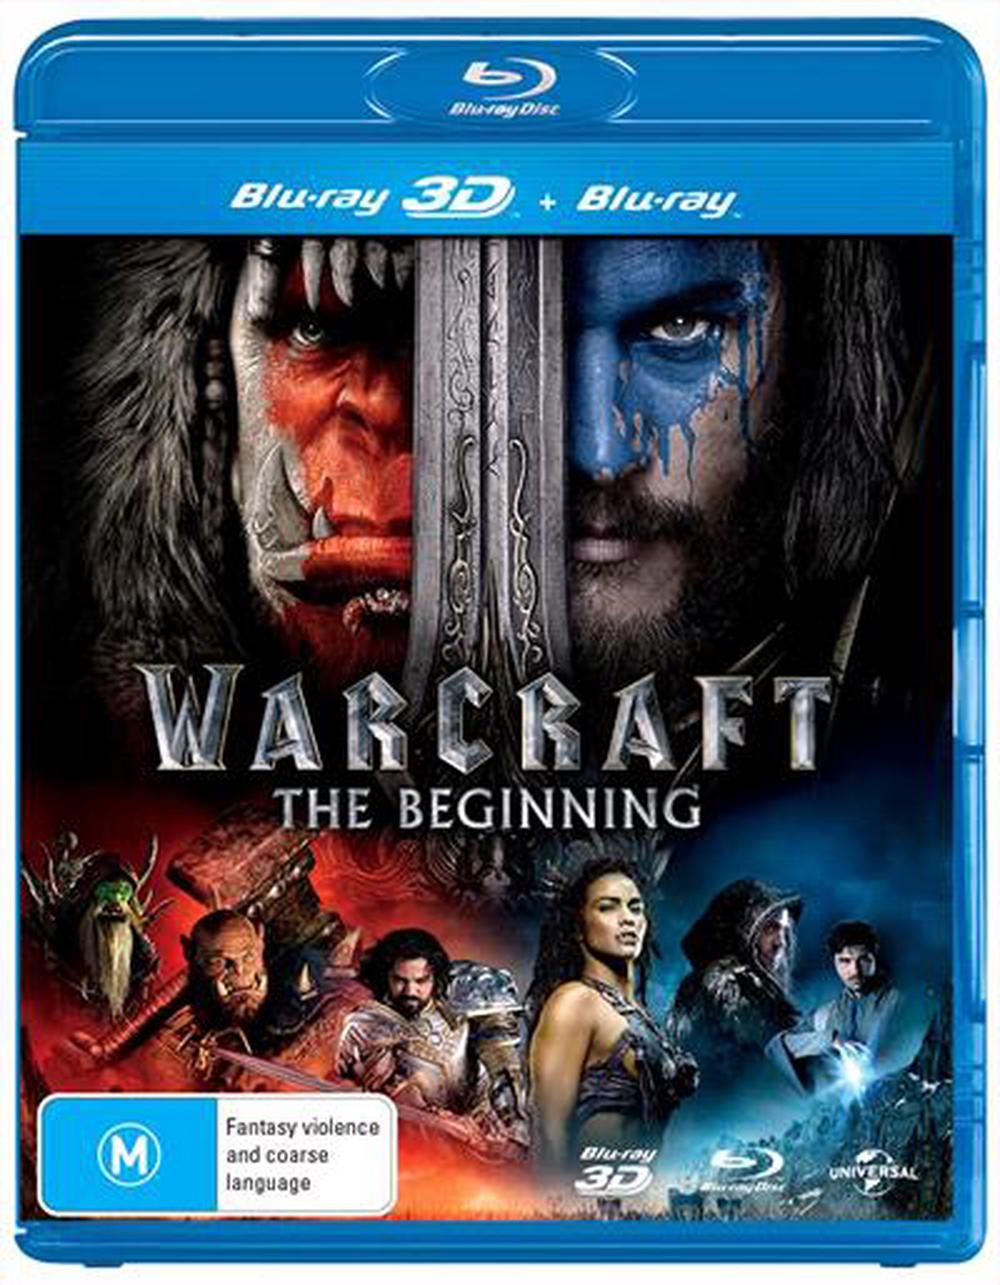 Warcraft - Beginning, The | 3D + 2D Blu-Ray + UV